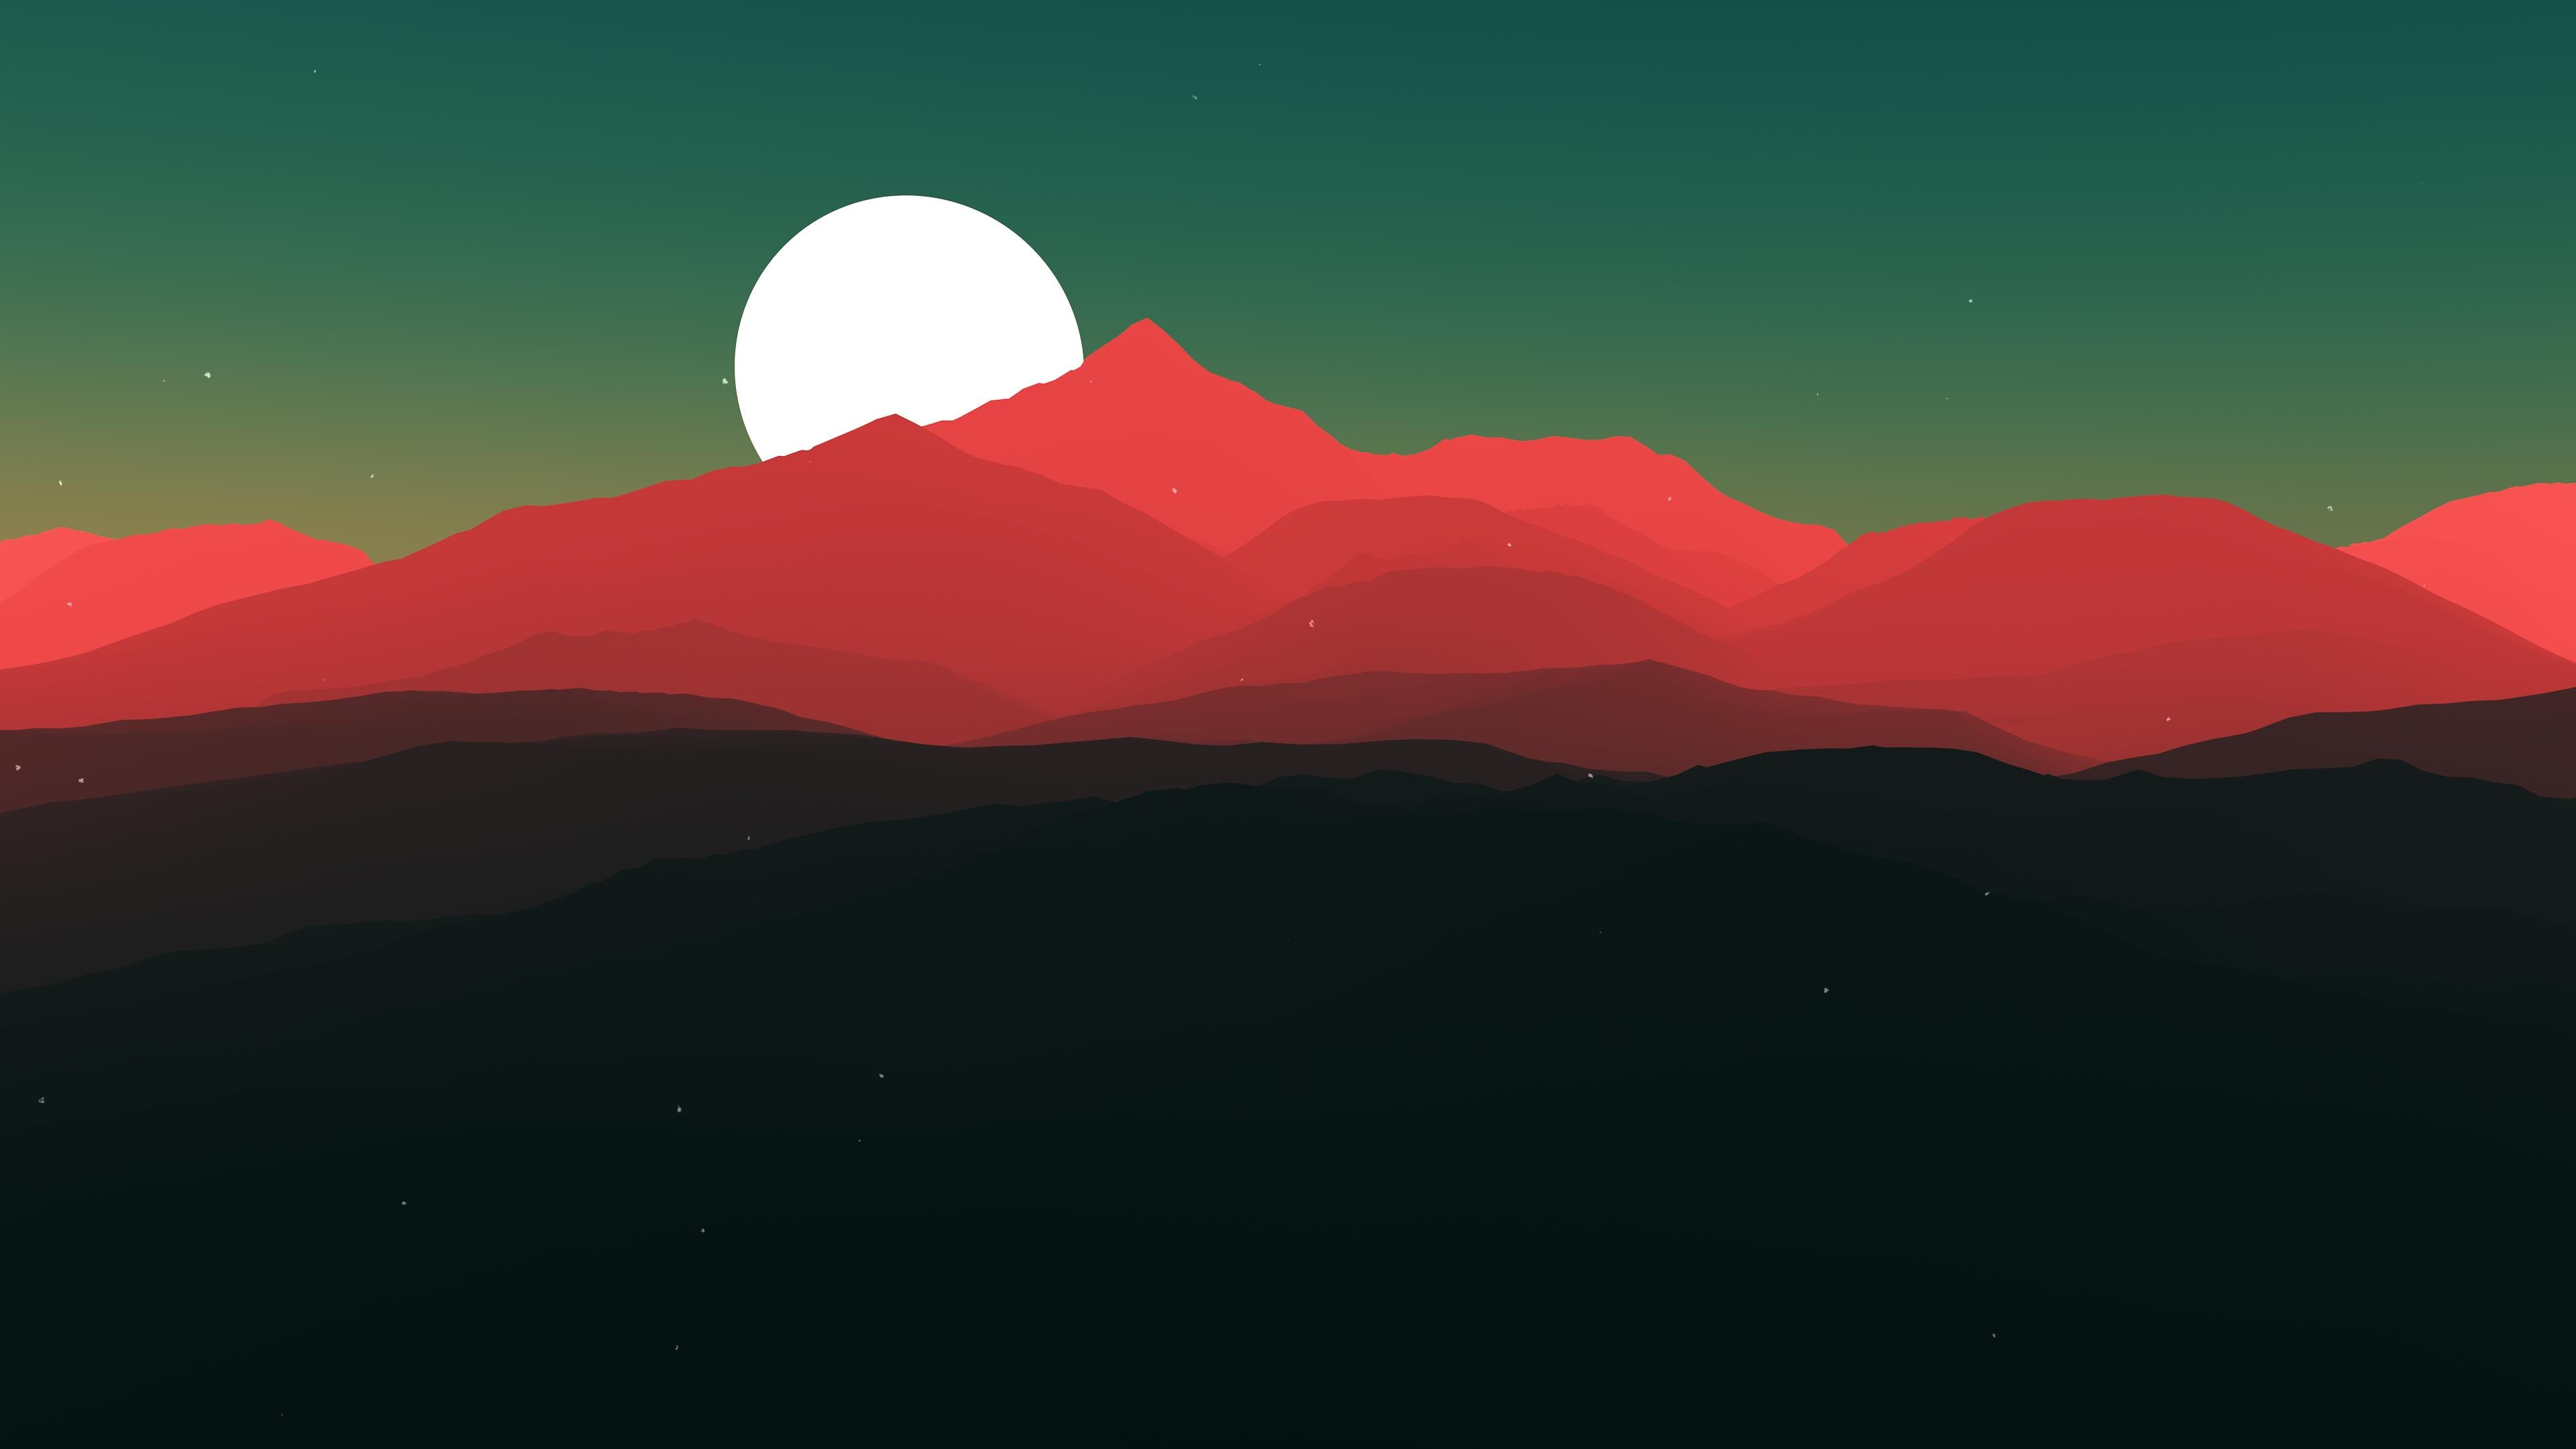 Minimalist Sunrise wallpaper